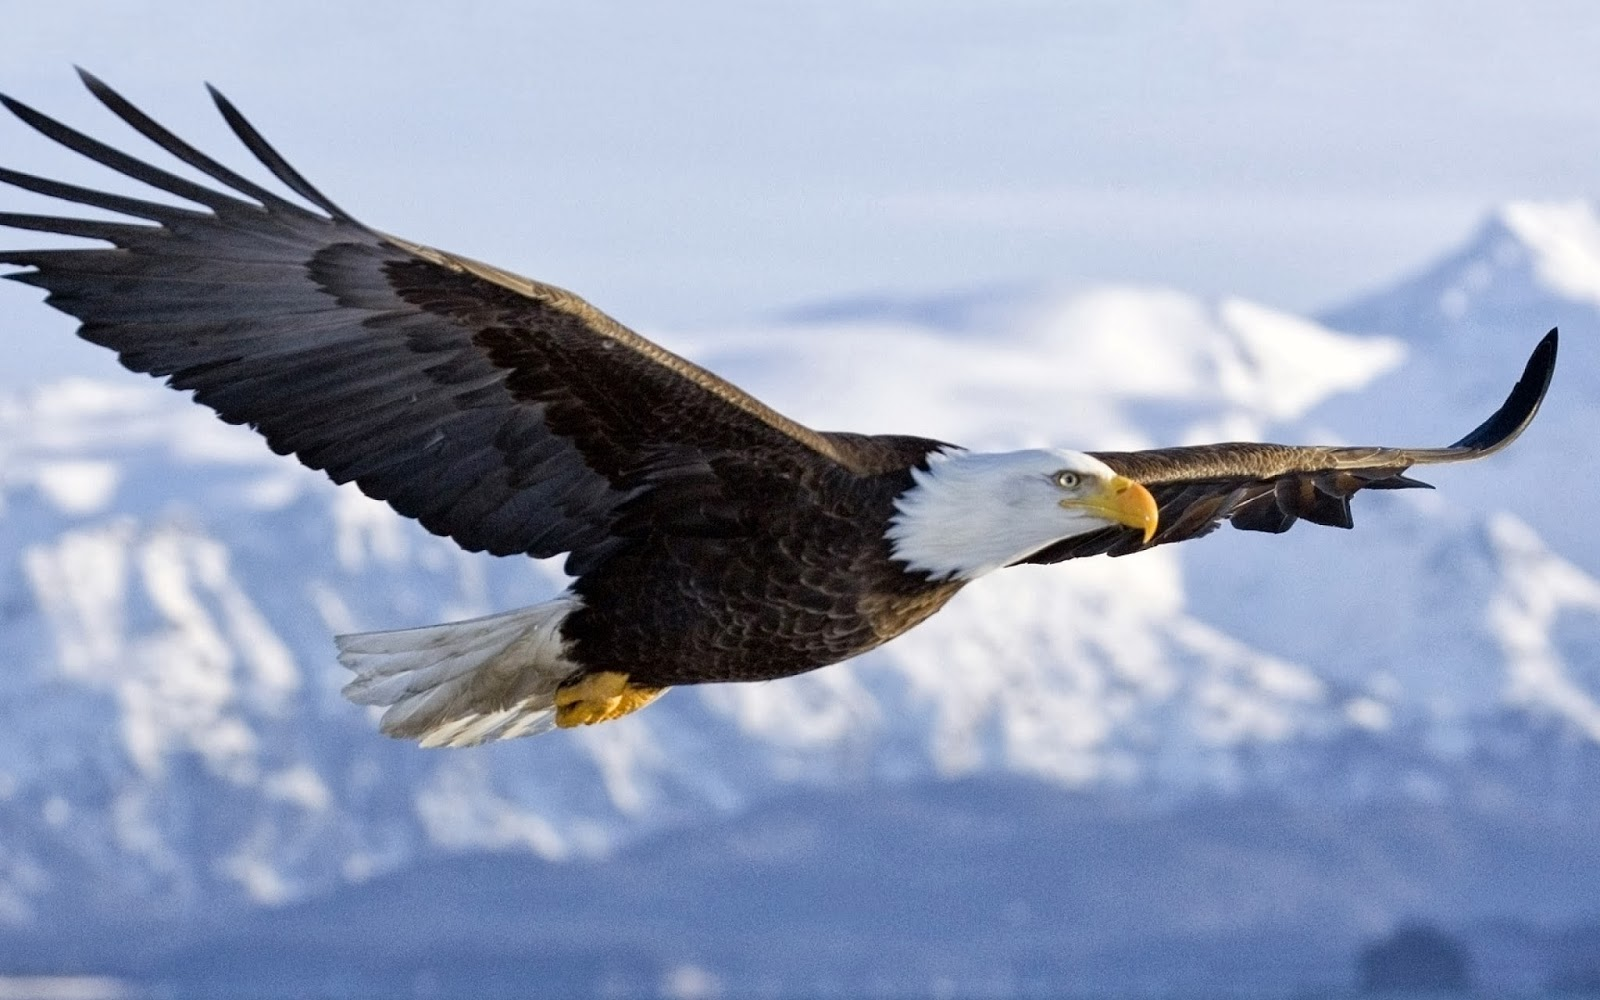 Wallpapers 4 u Download 3D Flying Bald Eagle HD Wallpaper 1600x1000